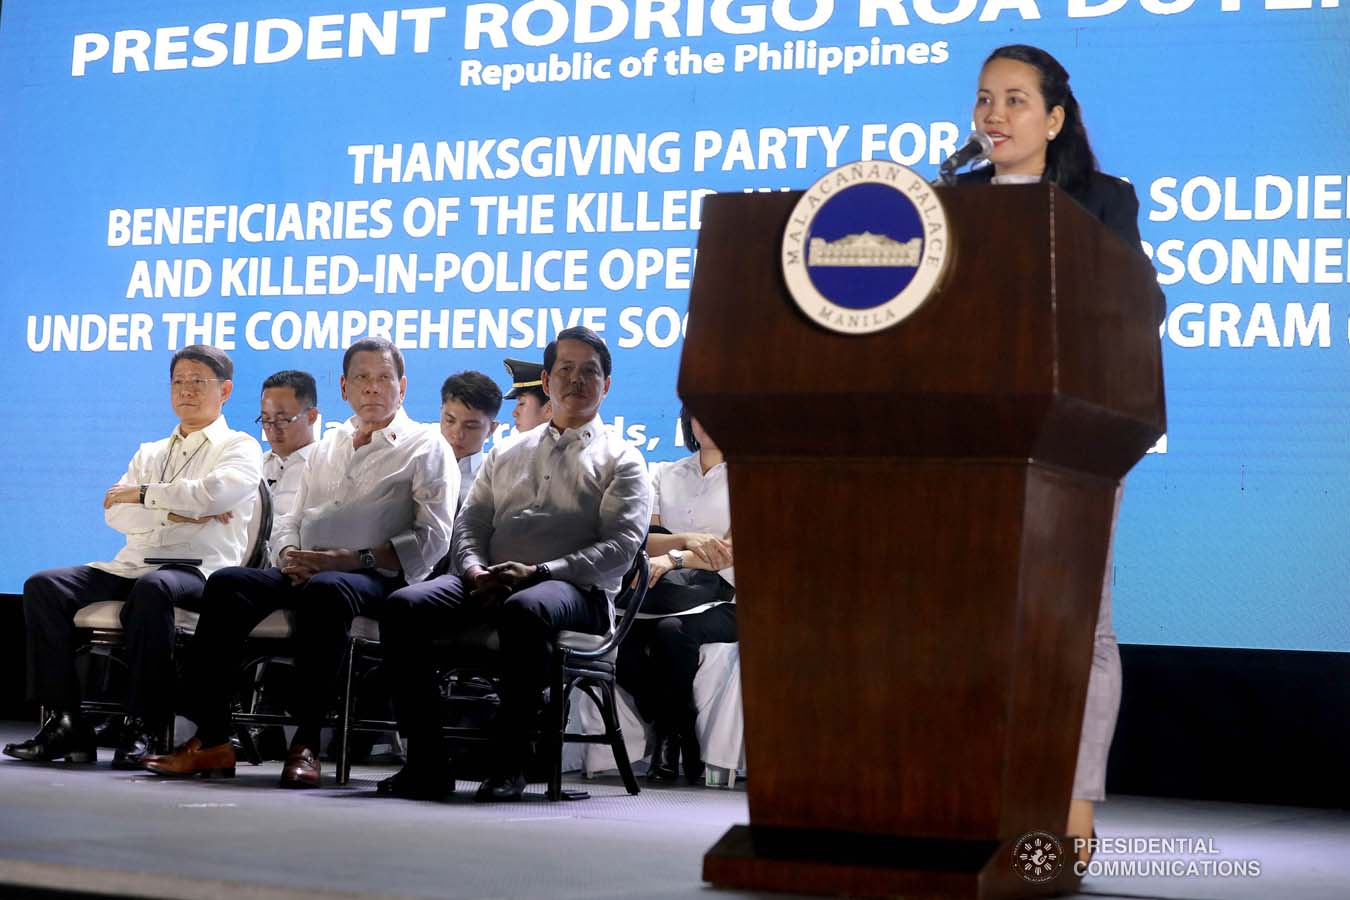 President Rodrigo Roa Duterte witnesses the program proper during the Thanksgiving party for the beneficiaries of   the killed-in-action (KIA) soldiers and killed-in-police operation (KIPO) personnel under the Comprehensive Social   Benefits Program at the Malacañan Palace on December 10, 2019. ALFRED FRIAS/PRESIDENTIAL PHOTO